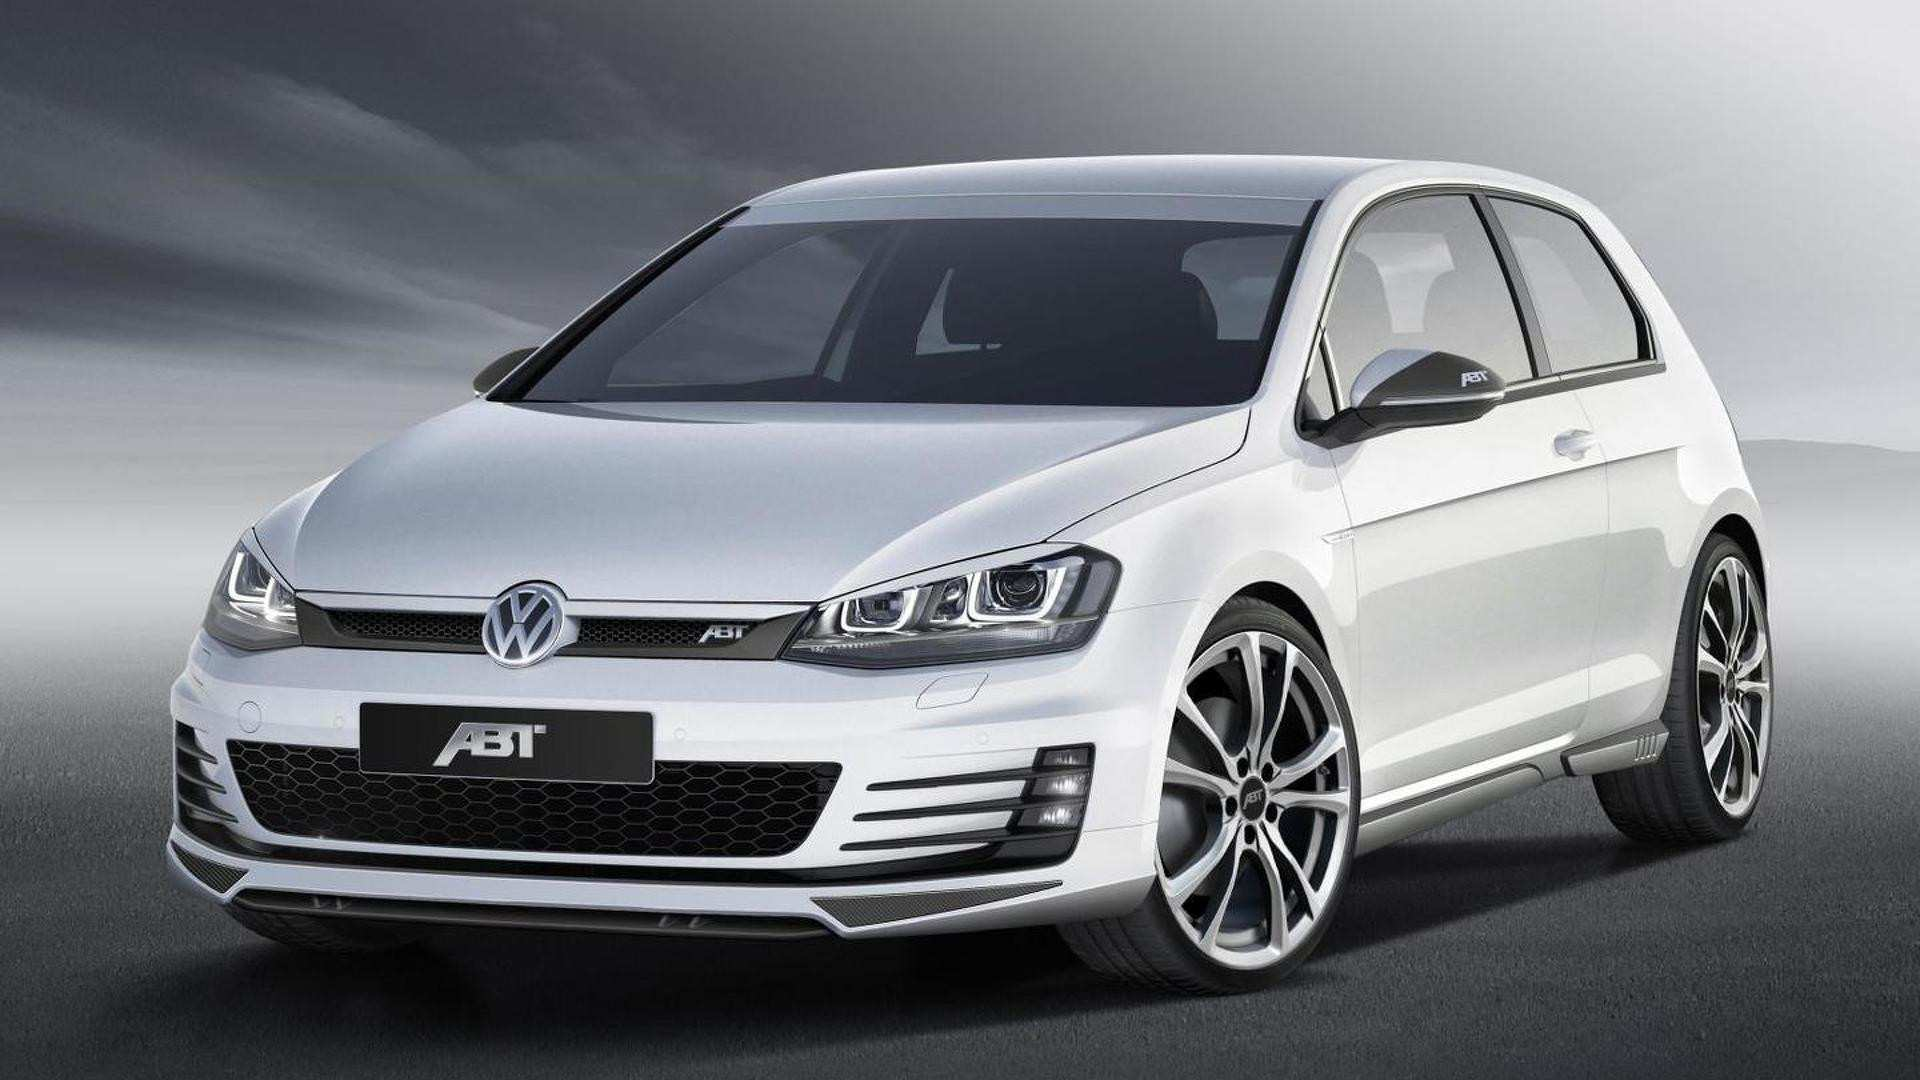 94 The Best 2019 Volkswagen Golf GTD Specs And Review